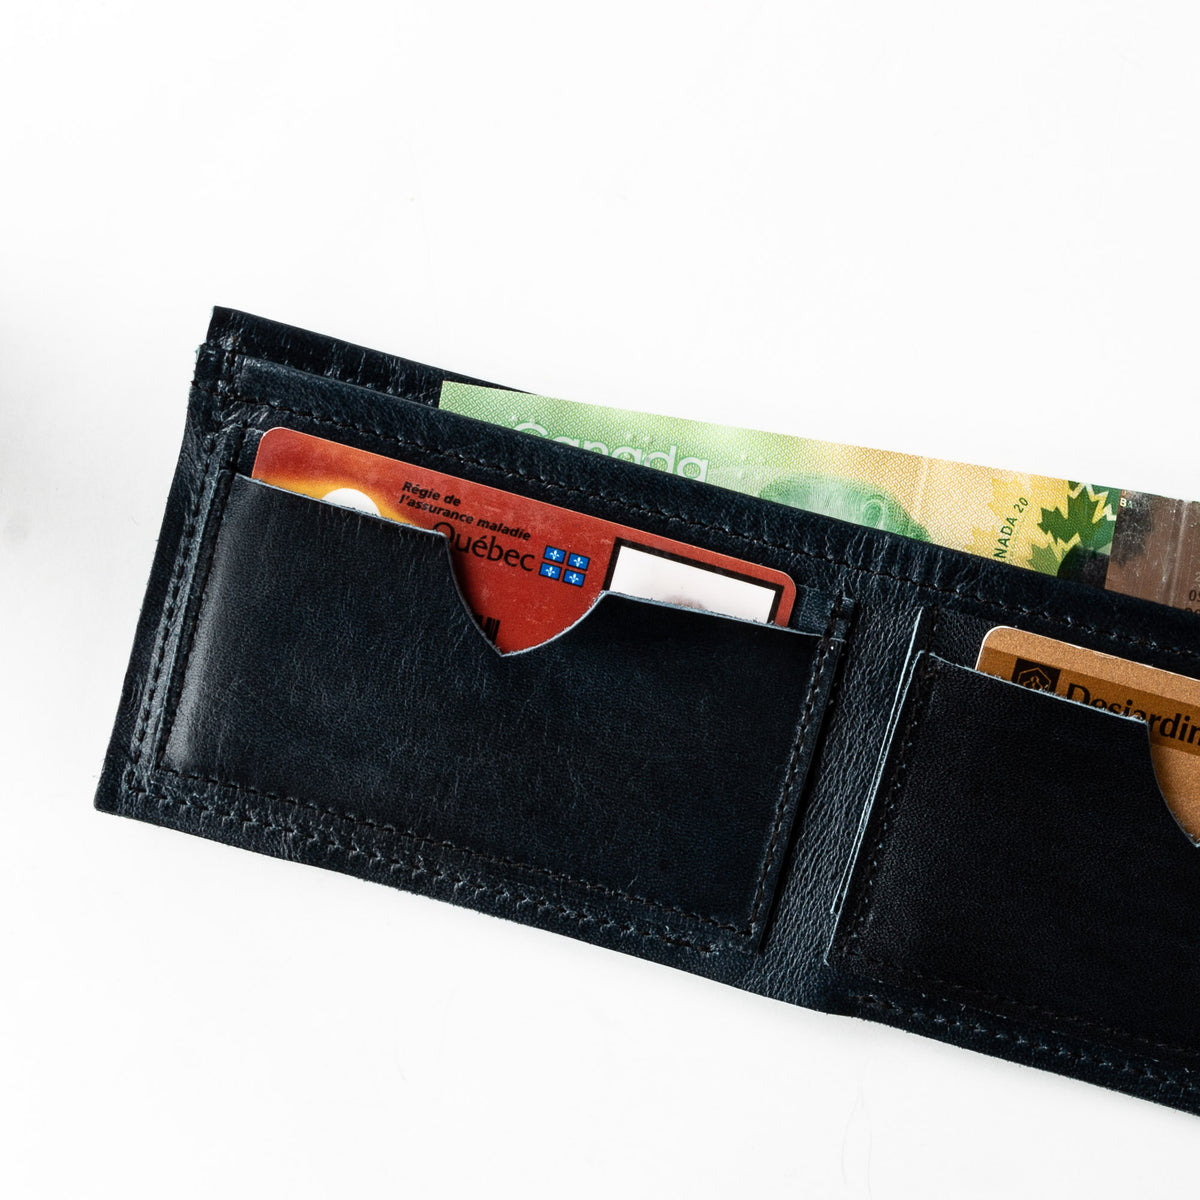 Inside View - St-Joseph - Classic Unisex Wallet / Card Holder - Sold by Chic & Basta